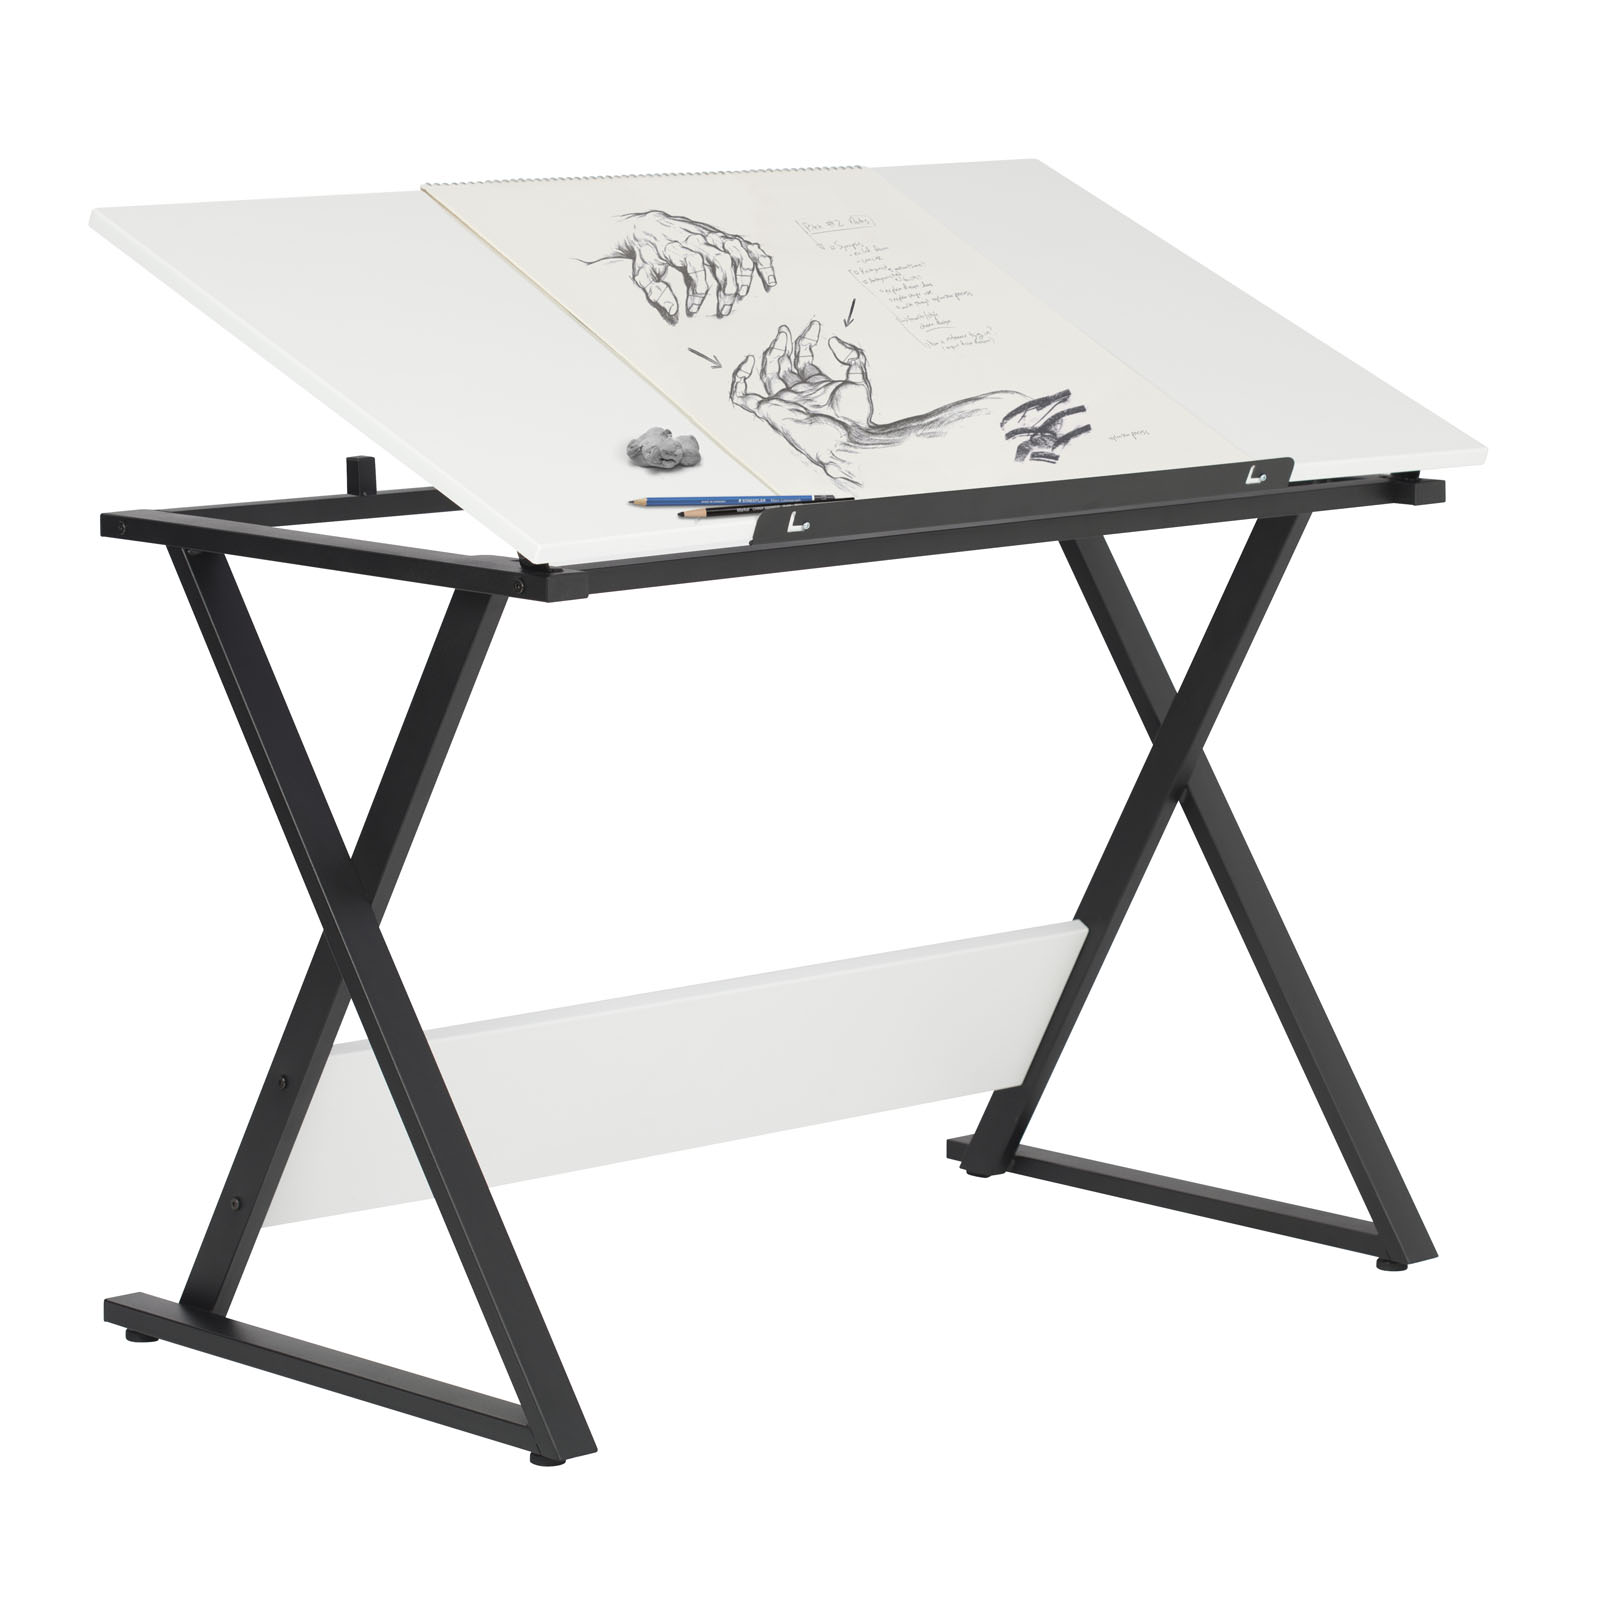 Drafting Table Design Axiom Student Drawing Table With Tilting Top Charcoal